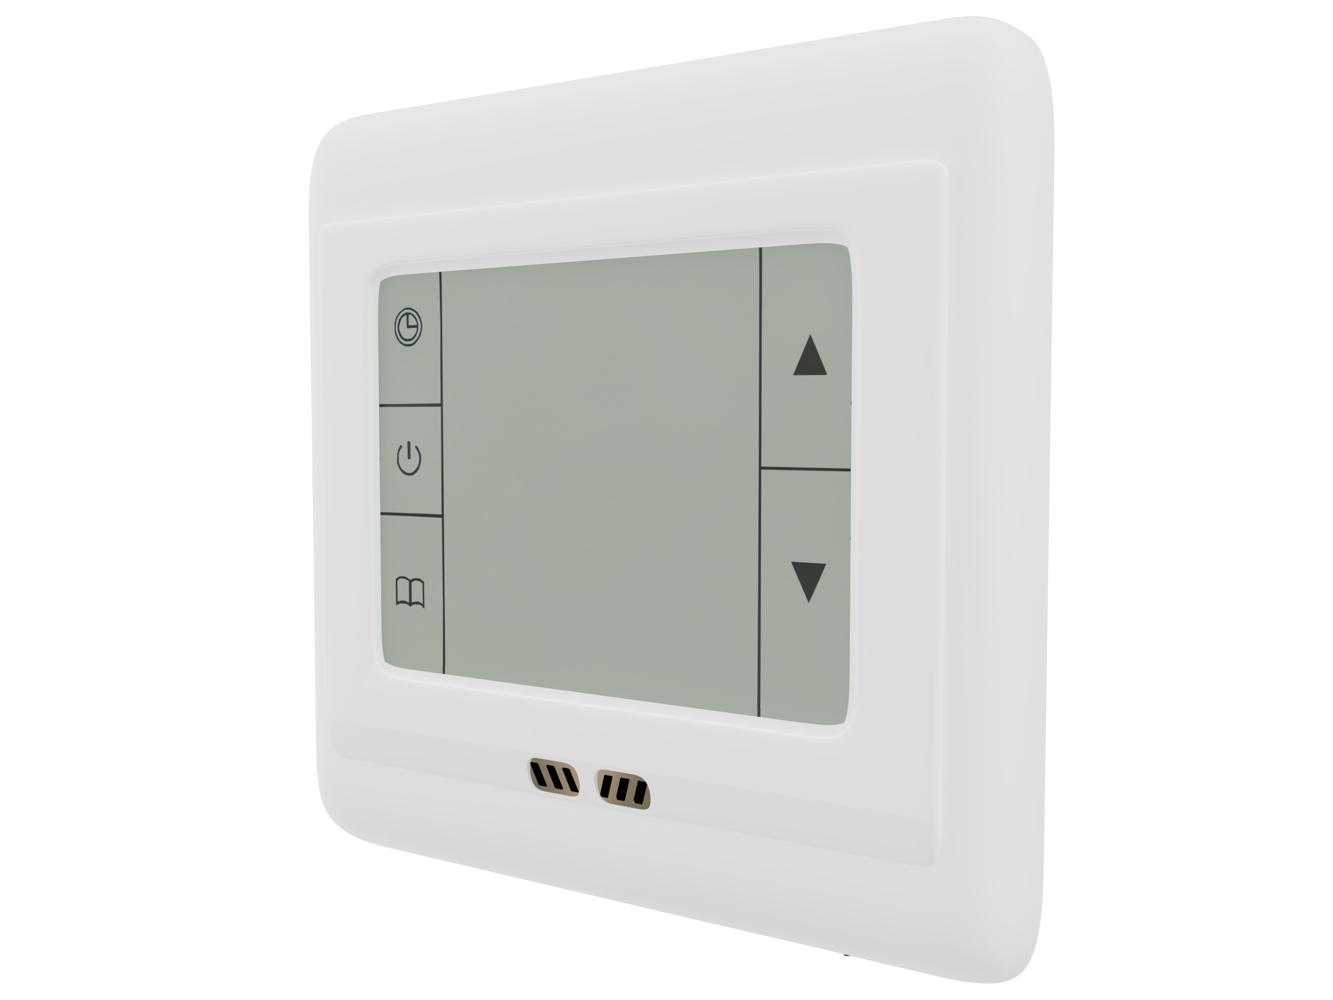 Touchscreen Thermostat 24 7 Illuminated Display Ad68 Smart Home Paragon Alarm Wiring Diagram Thermostats Itmarket24hpl Sklep Internetowy